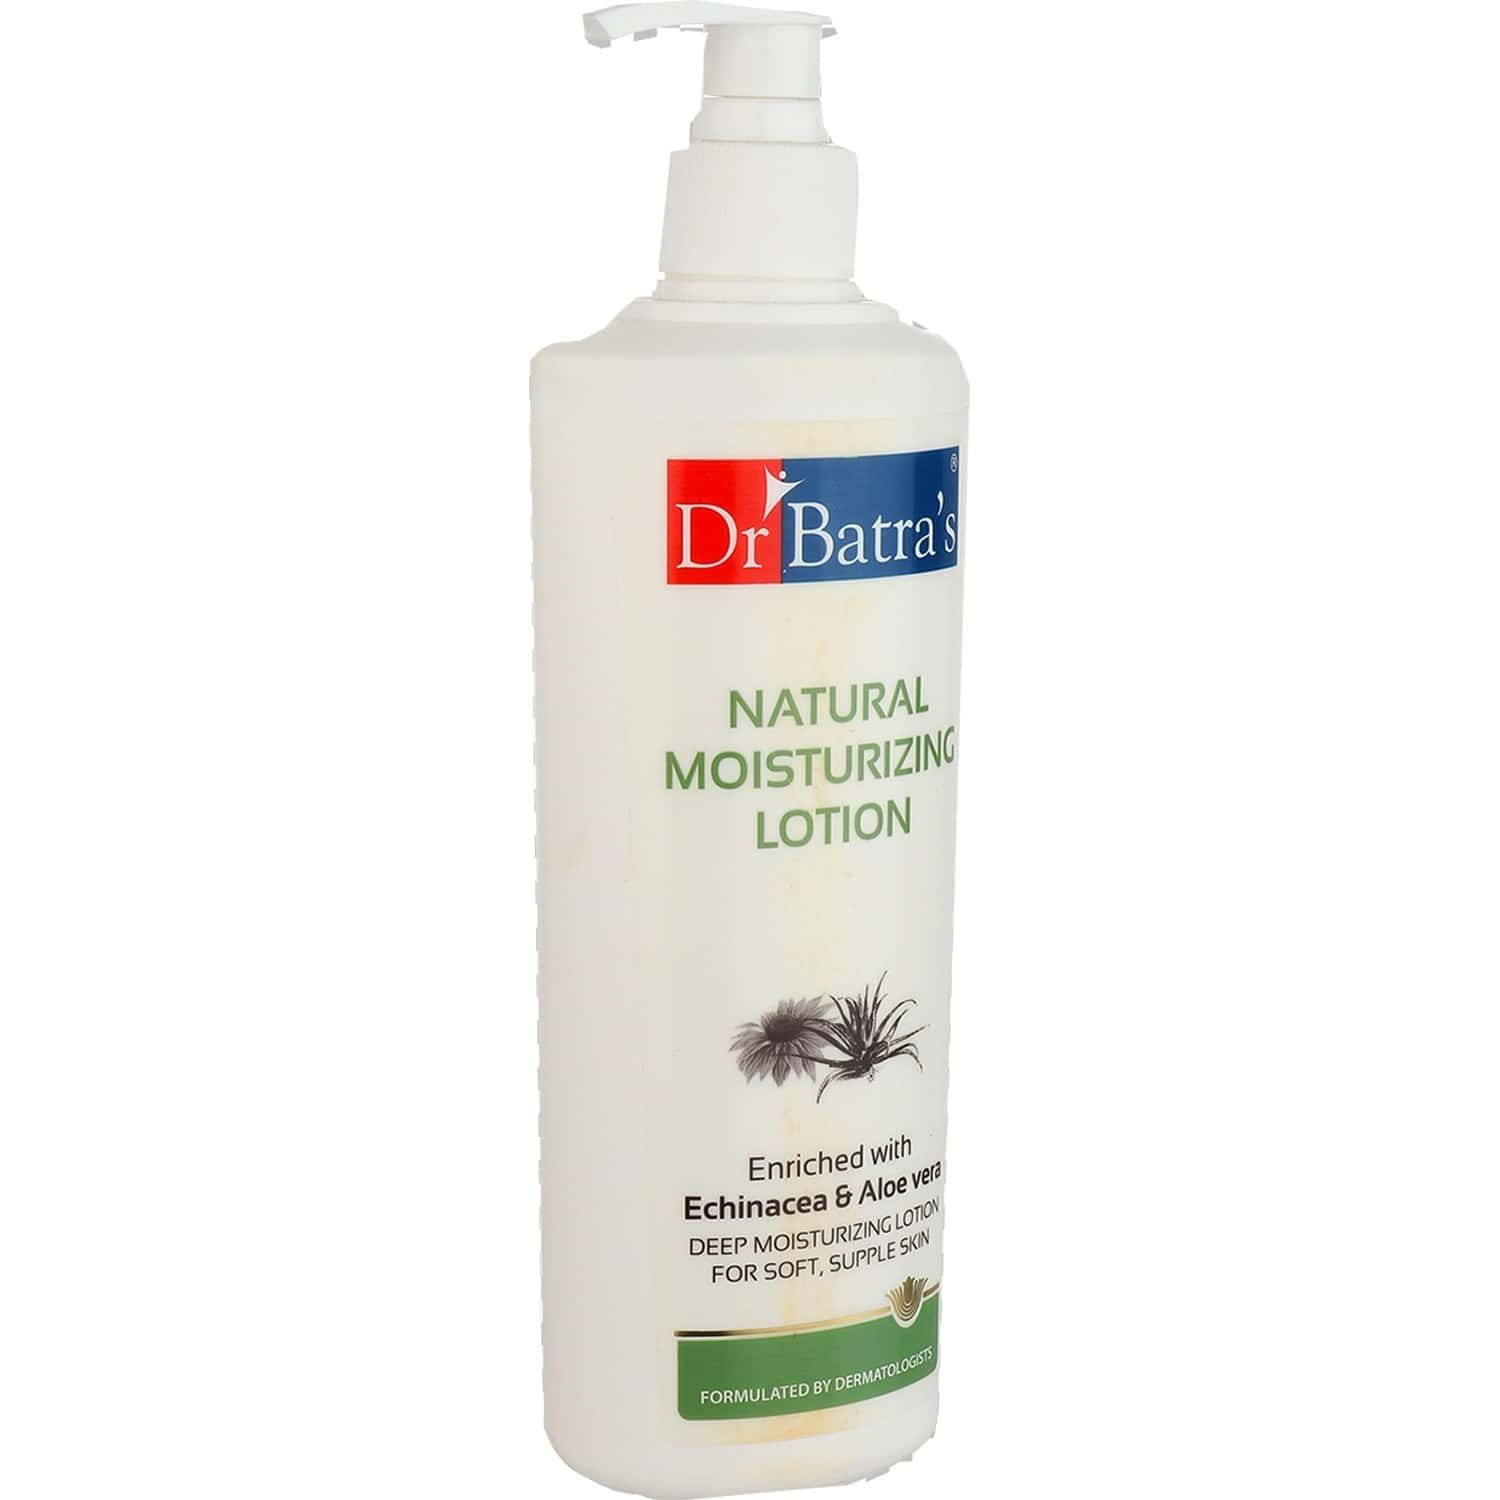 Dr Batra's Natural Moisturizing Lotion Enriched With Echinacea & Aloe Vera - 400 Ml